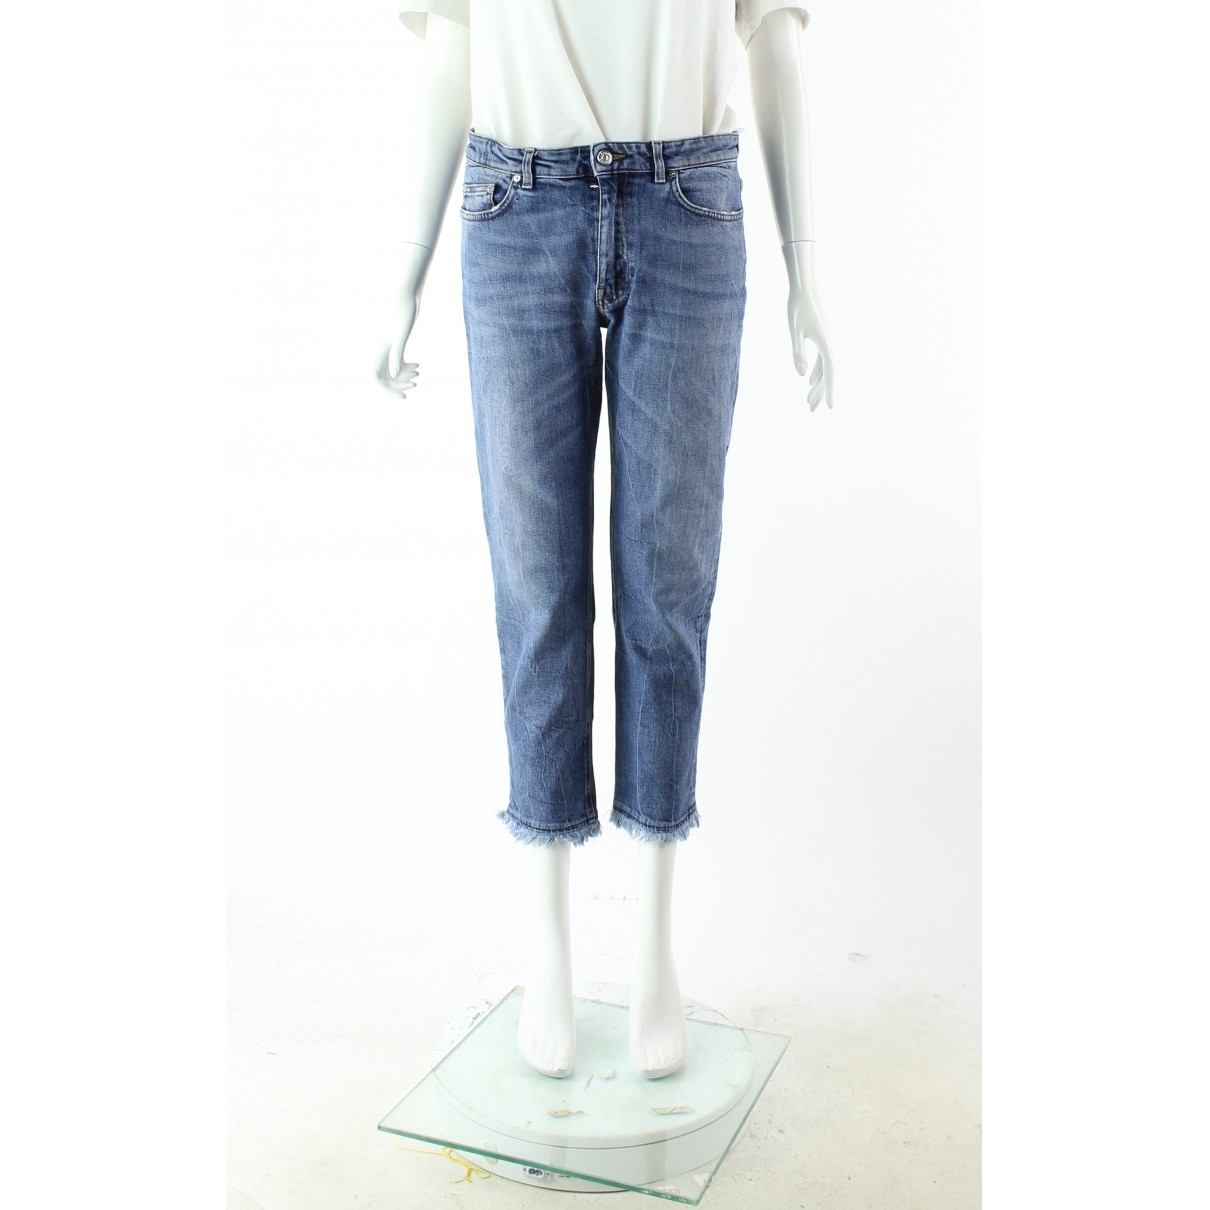 Acne Studios Row Blue Denim - Jeans Jeans for Women 40 FR